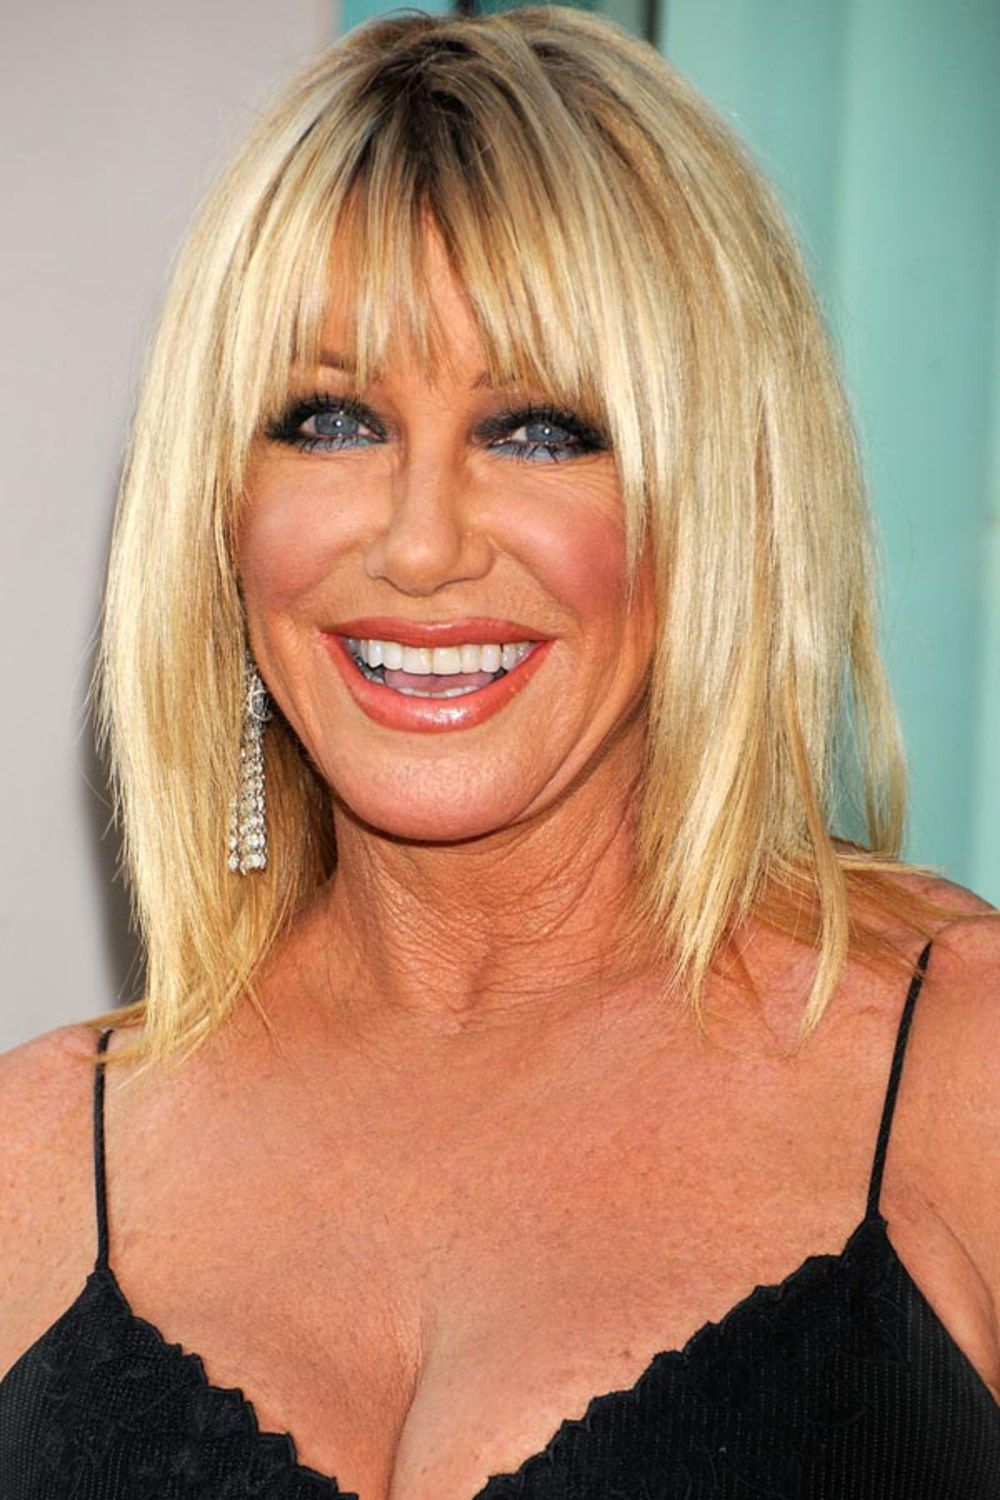 suzanne somers plastic surgery gossips started when people